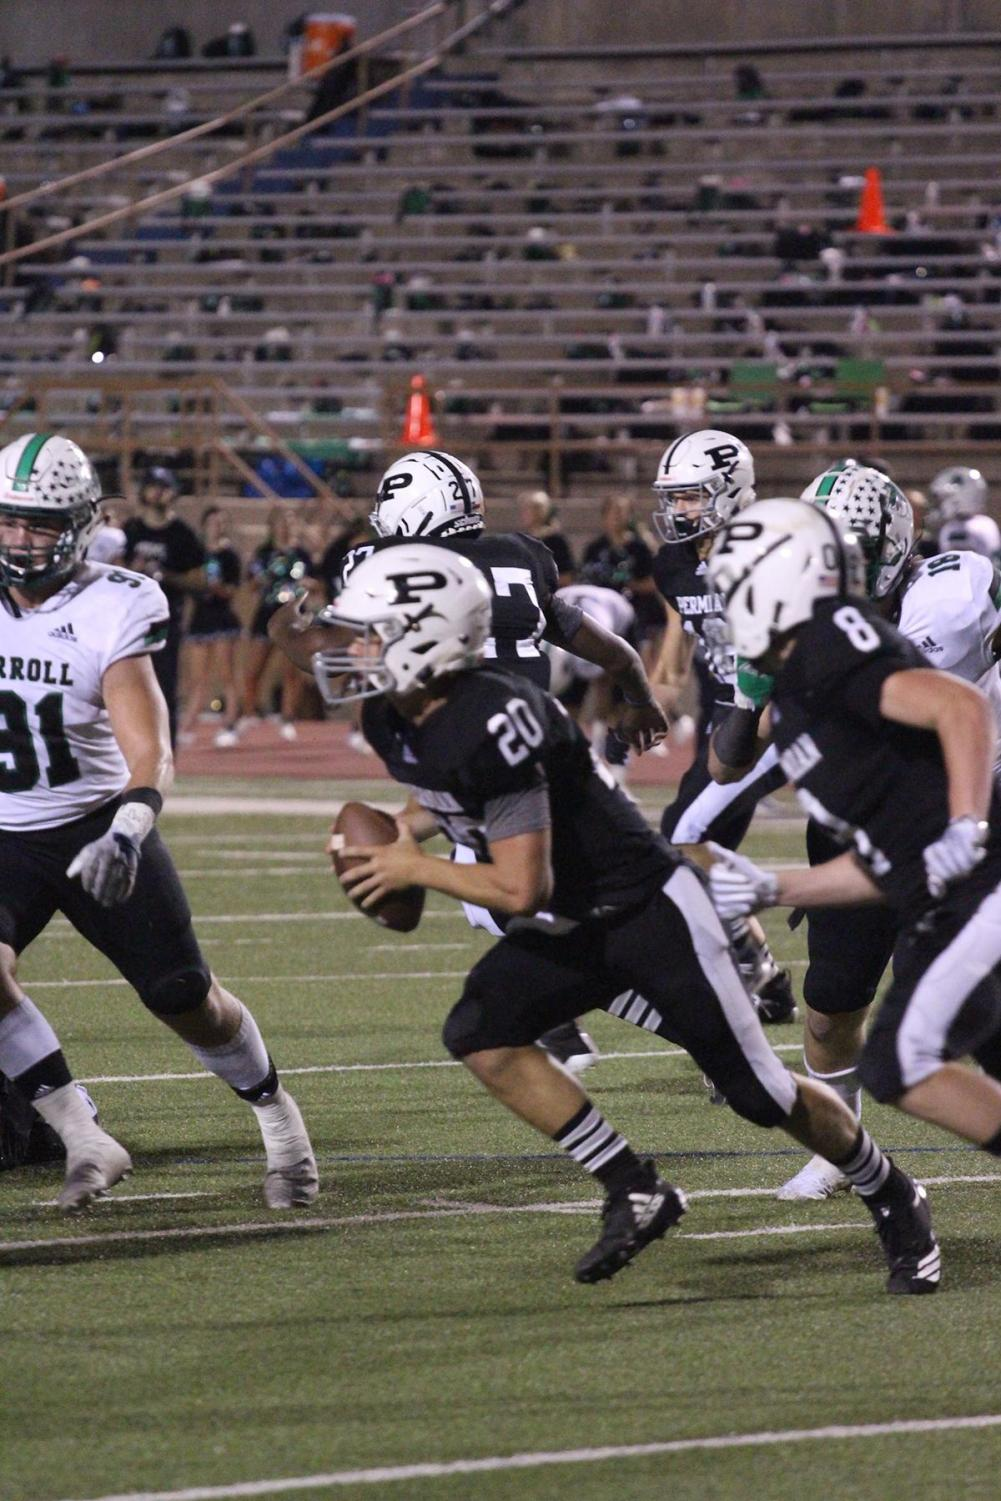 Quarterback senior Harper Terry runs for out-of-bounds to gain a few yards against Southlake Carroll.